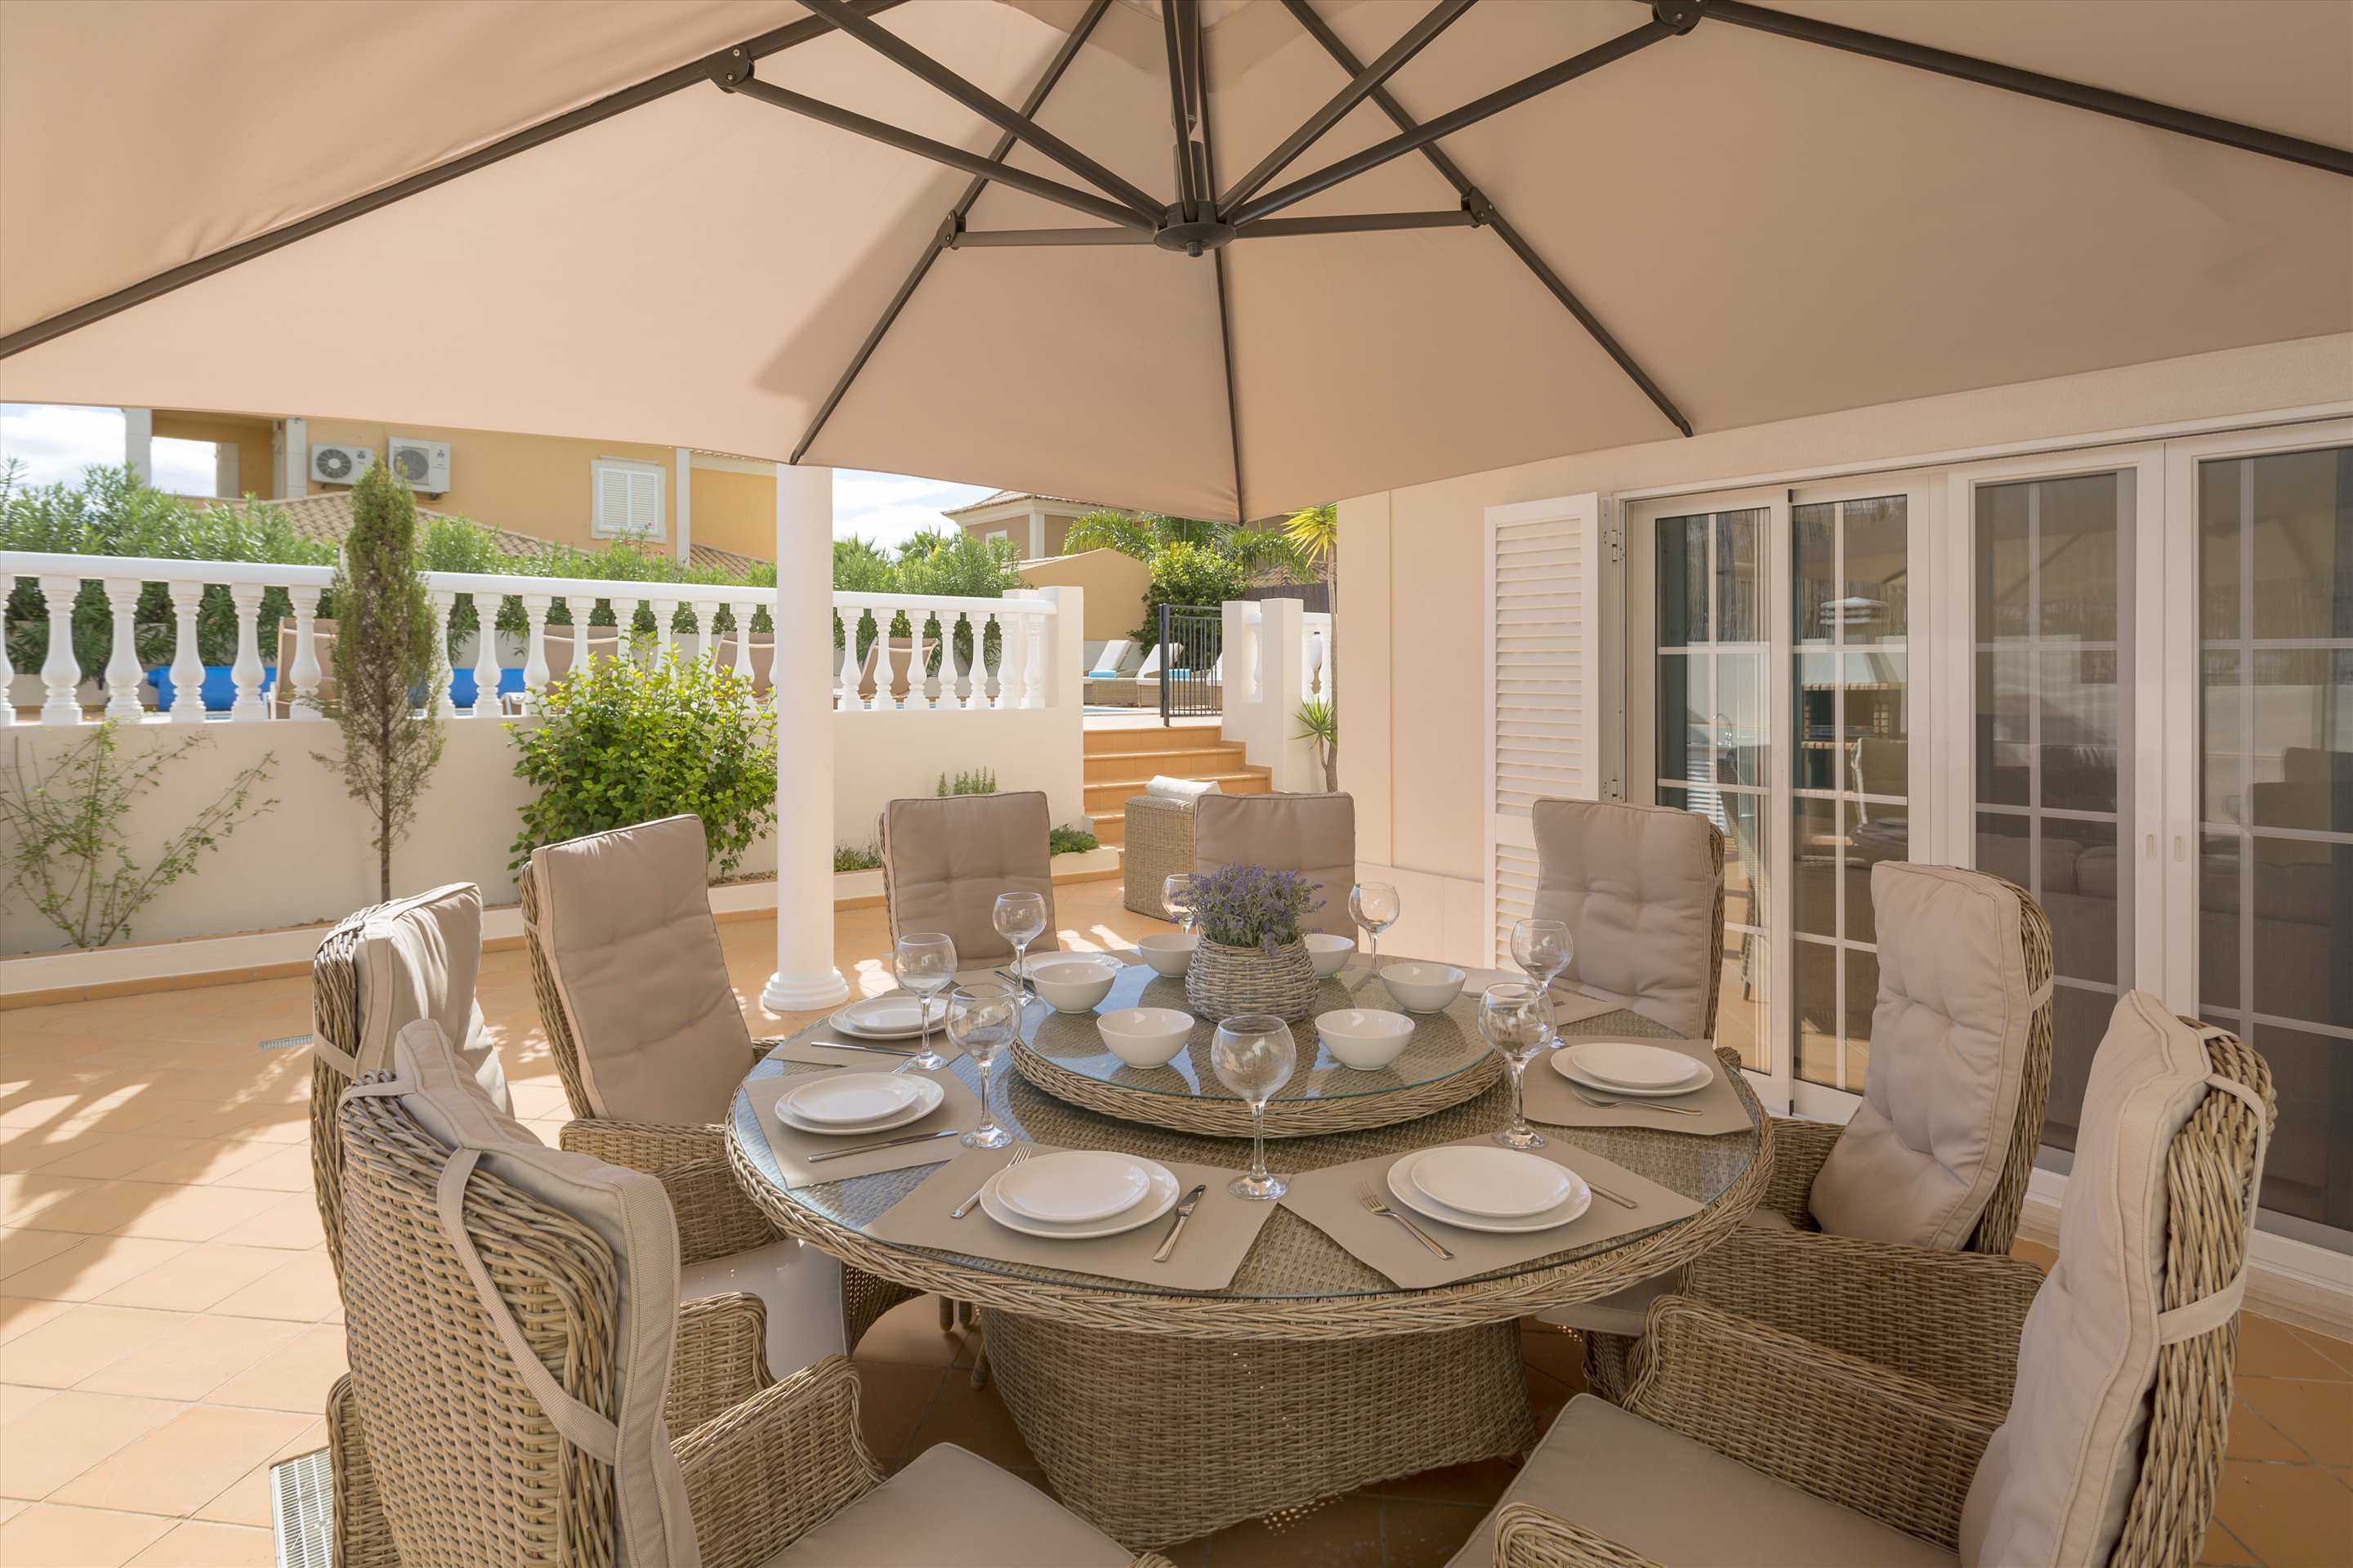 Villa Diana, 4 bedroom villa in Vale do Lobo, Algarve Photo #3